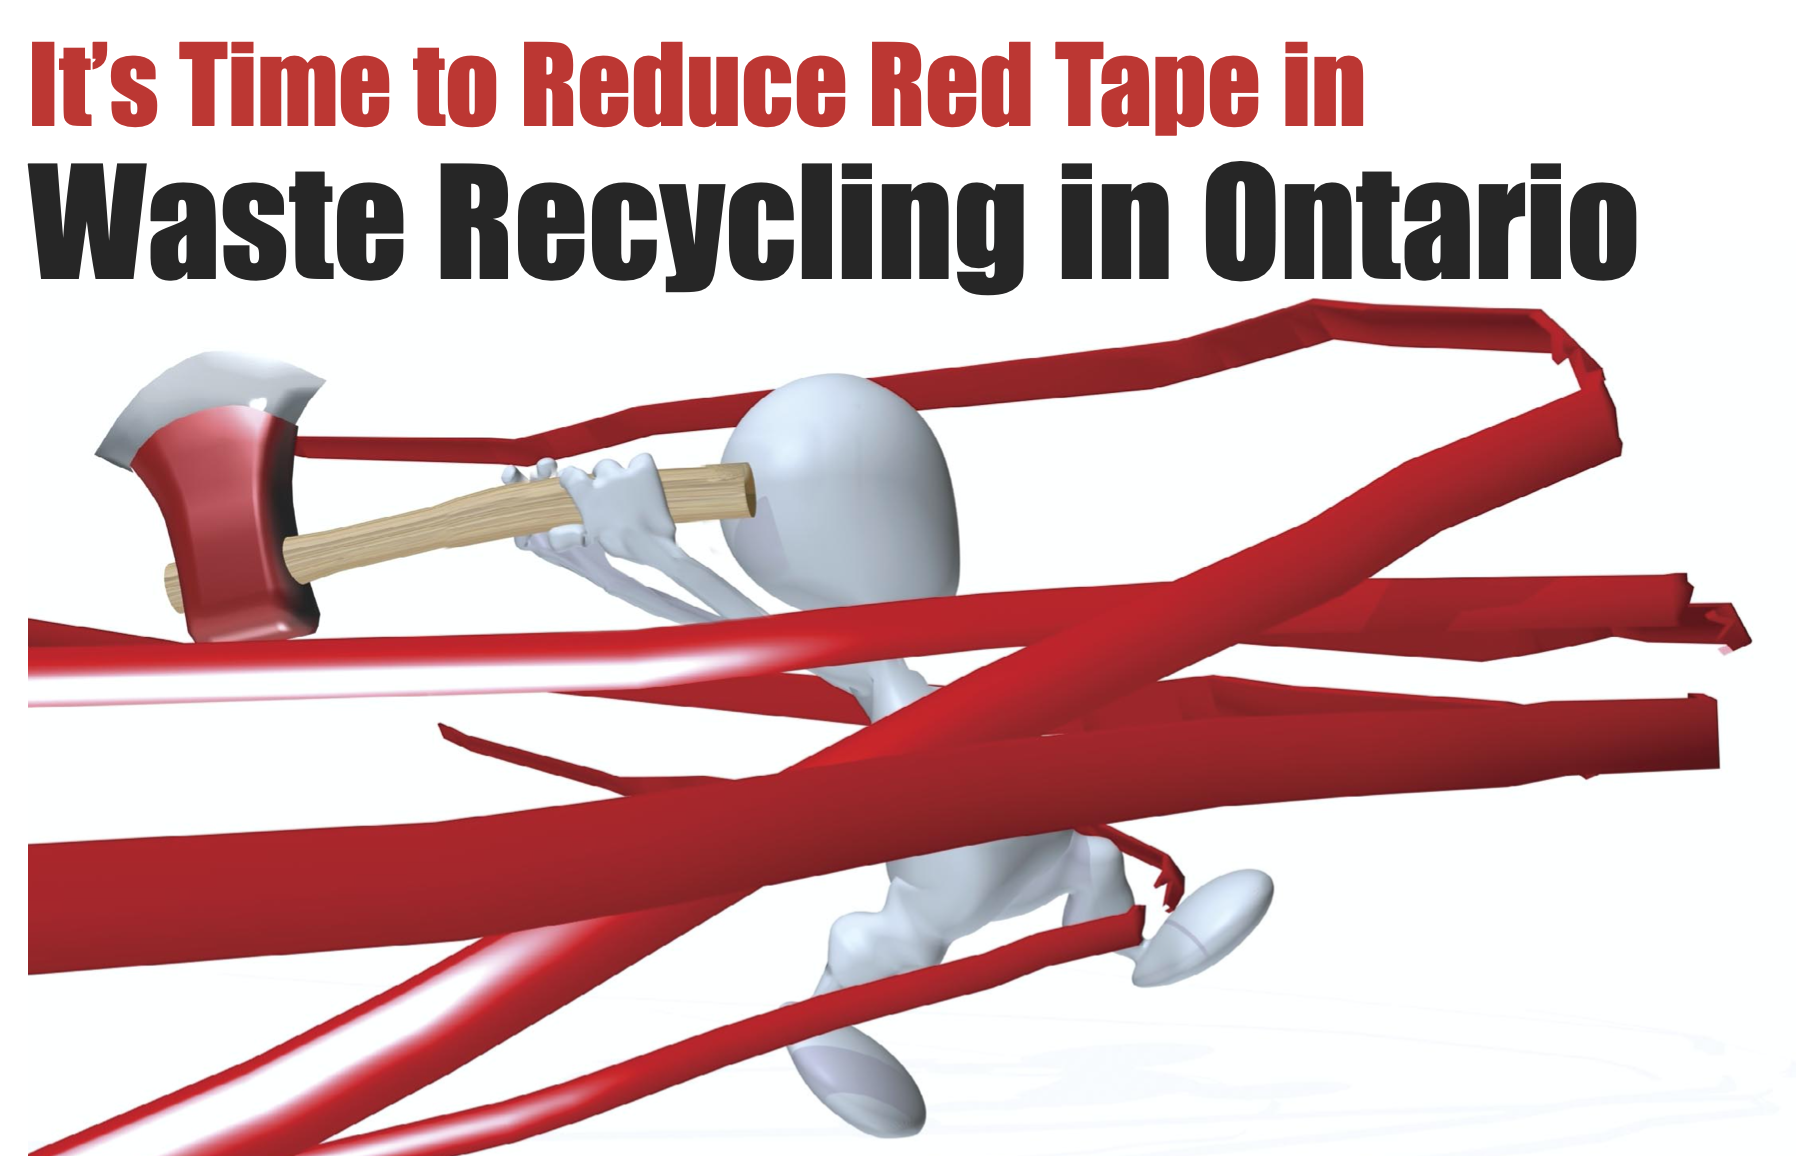 It's Tiem to Reduce Red Tape in Waste Recycling in Ontario